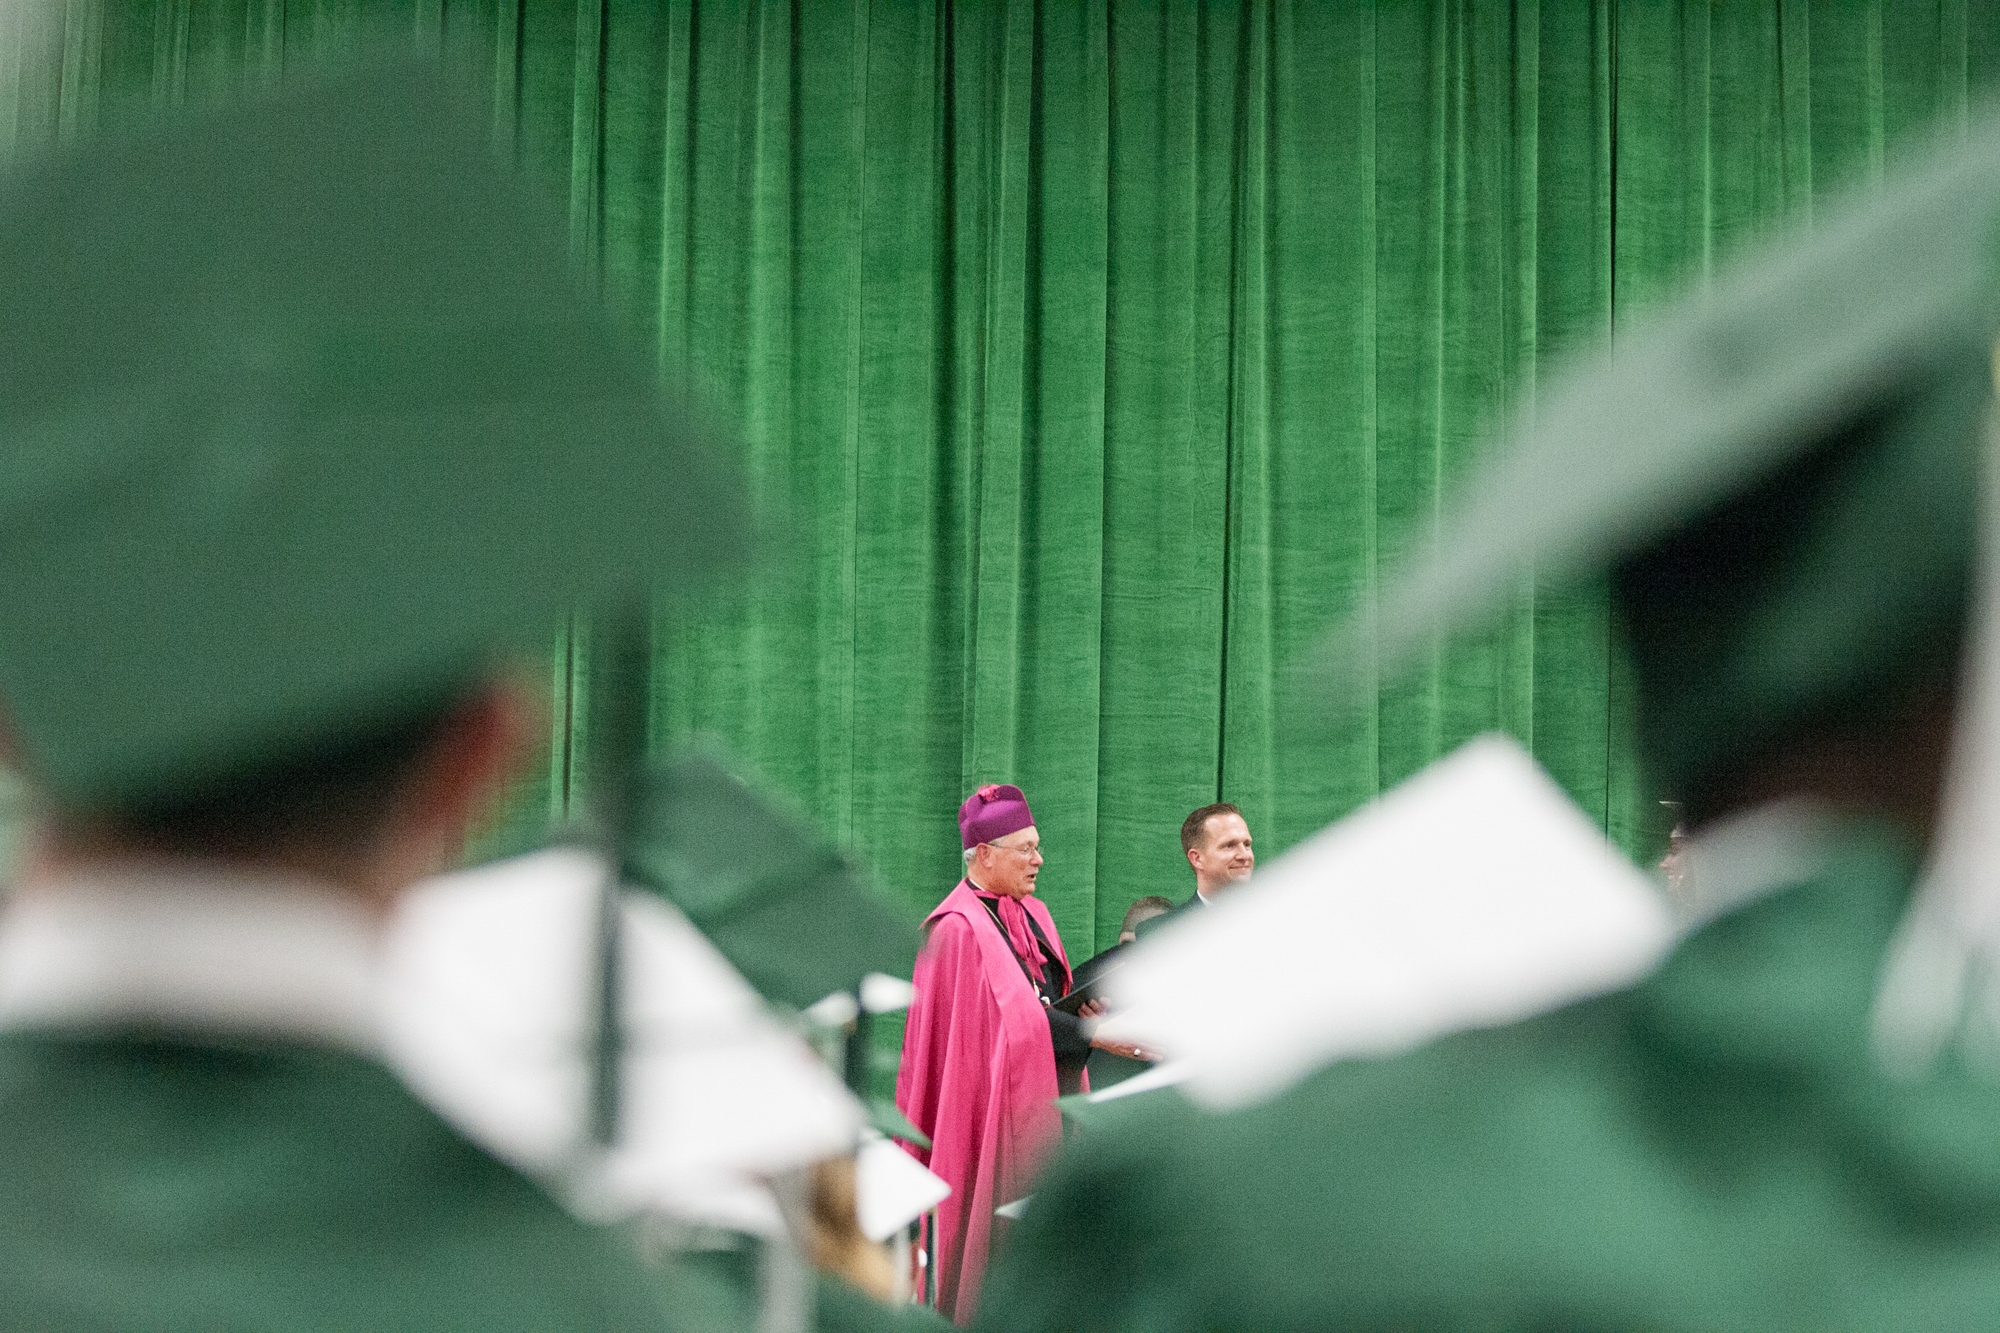 Rev. David Malloy, center, confers diplomas to graduates during commencement on Friday, May 25, 2018, at Boylan Catholic High School in Rockford. [SCOTT P. YATES/RRSTAR.COM STAFF]